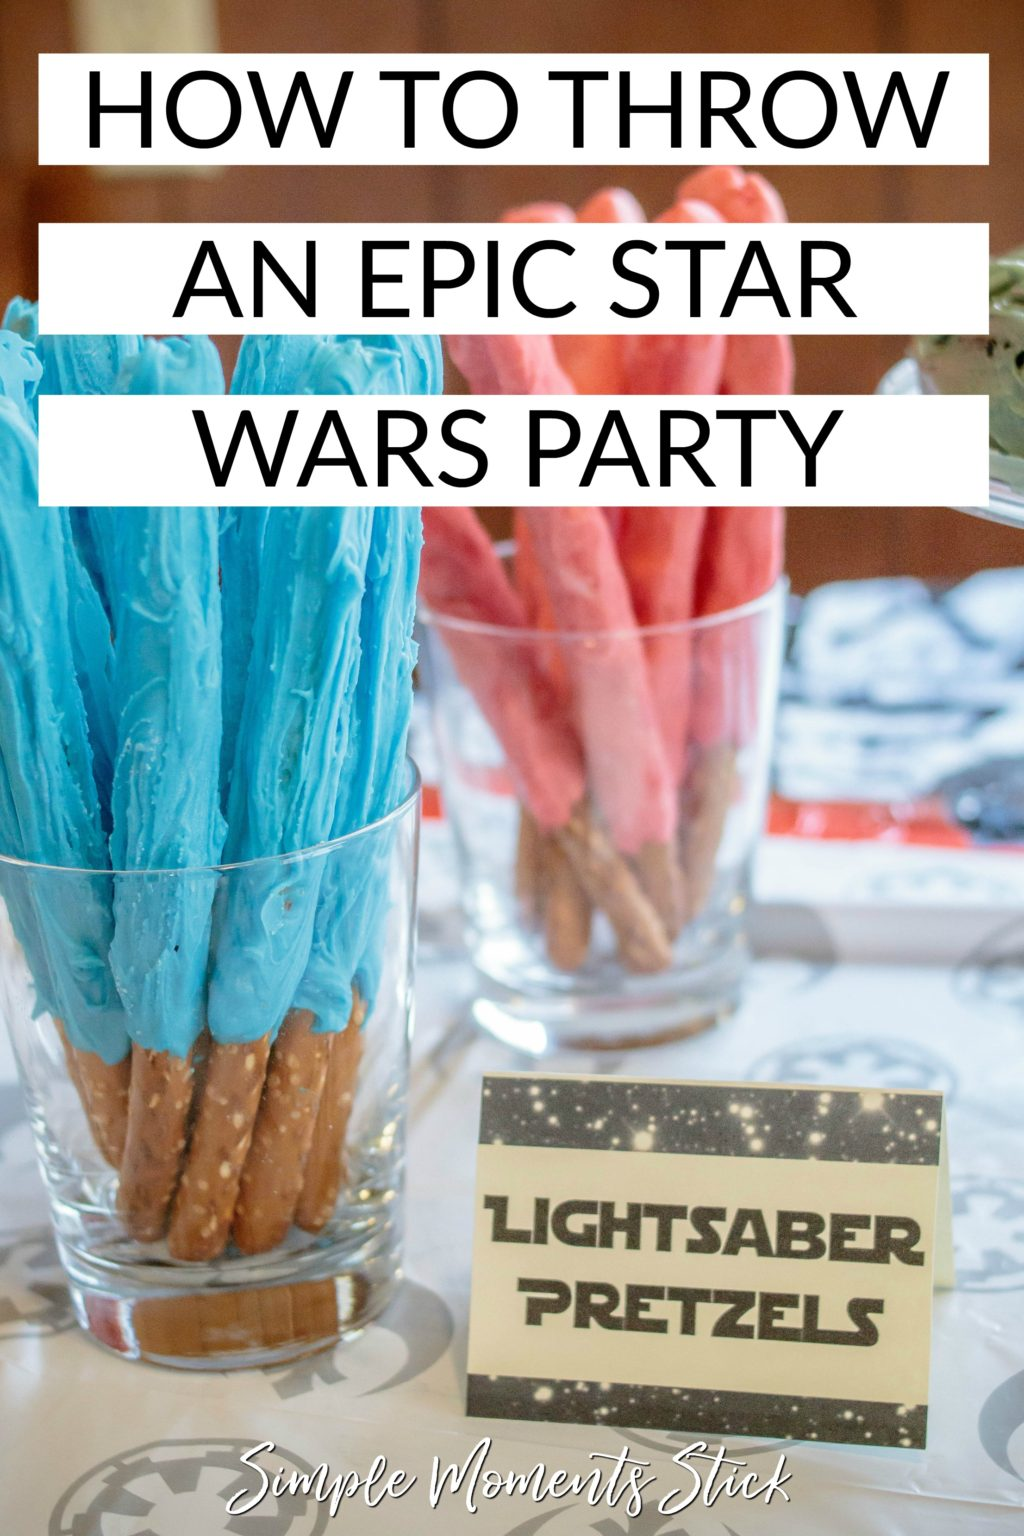 Plan the perfect Star Wars party for your little one! #starwars #birthdayparty #starwarsparty #theforce #maytheforcebewithyou